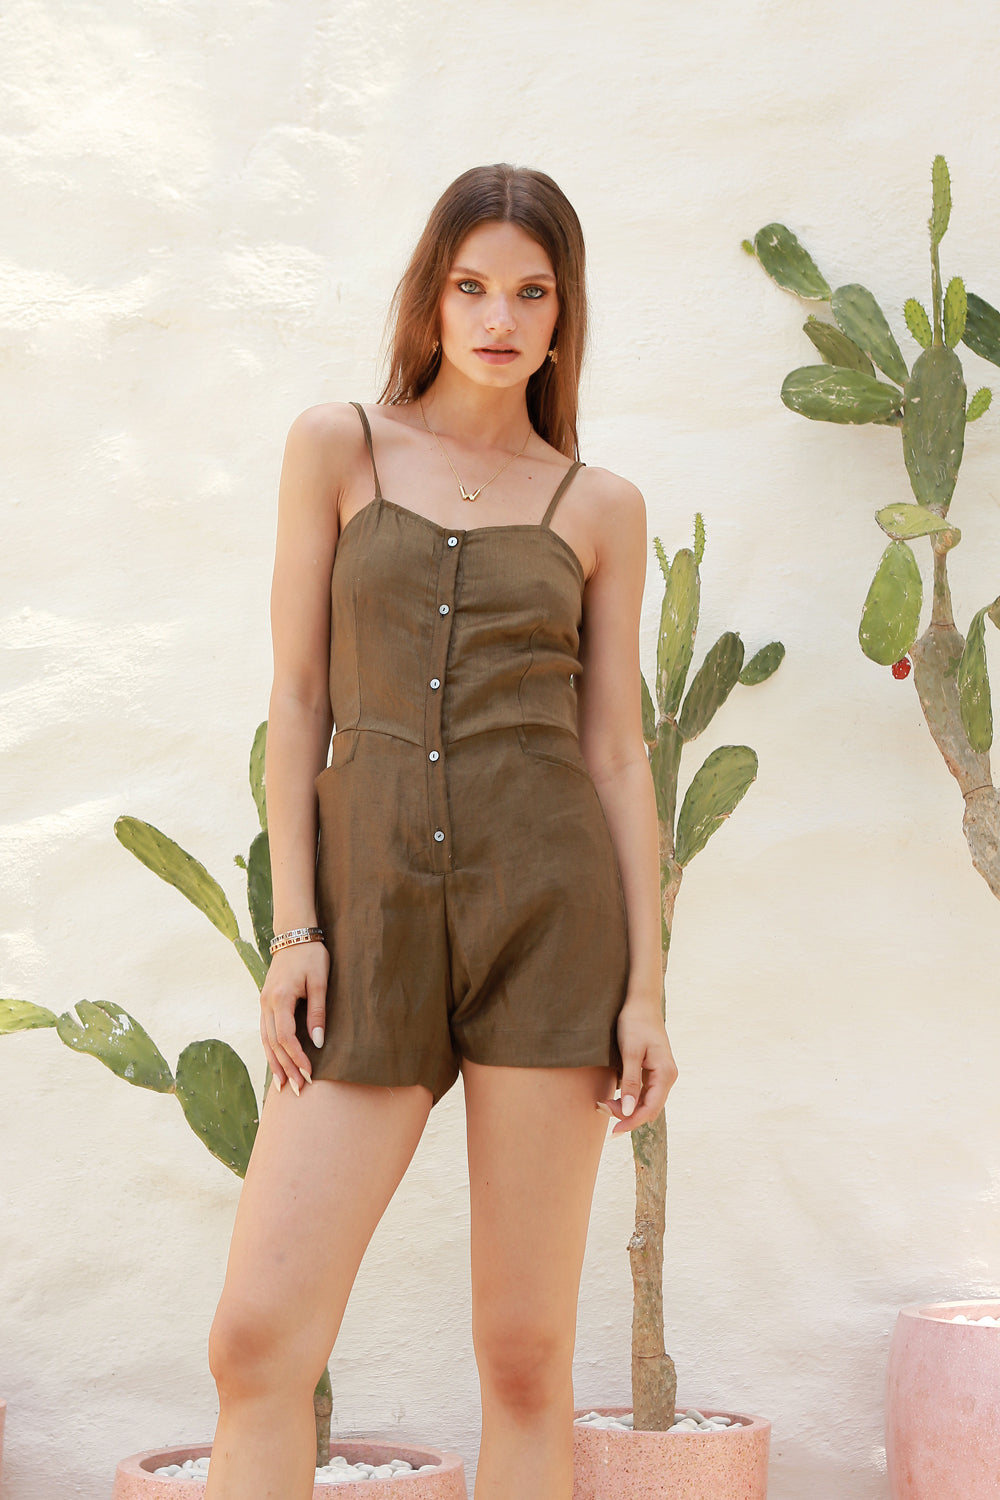 La Confection - Marbella - Linen Spaghettu Strap Button Playsuit in Khaki